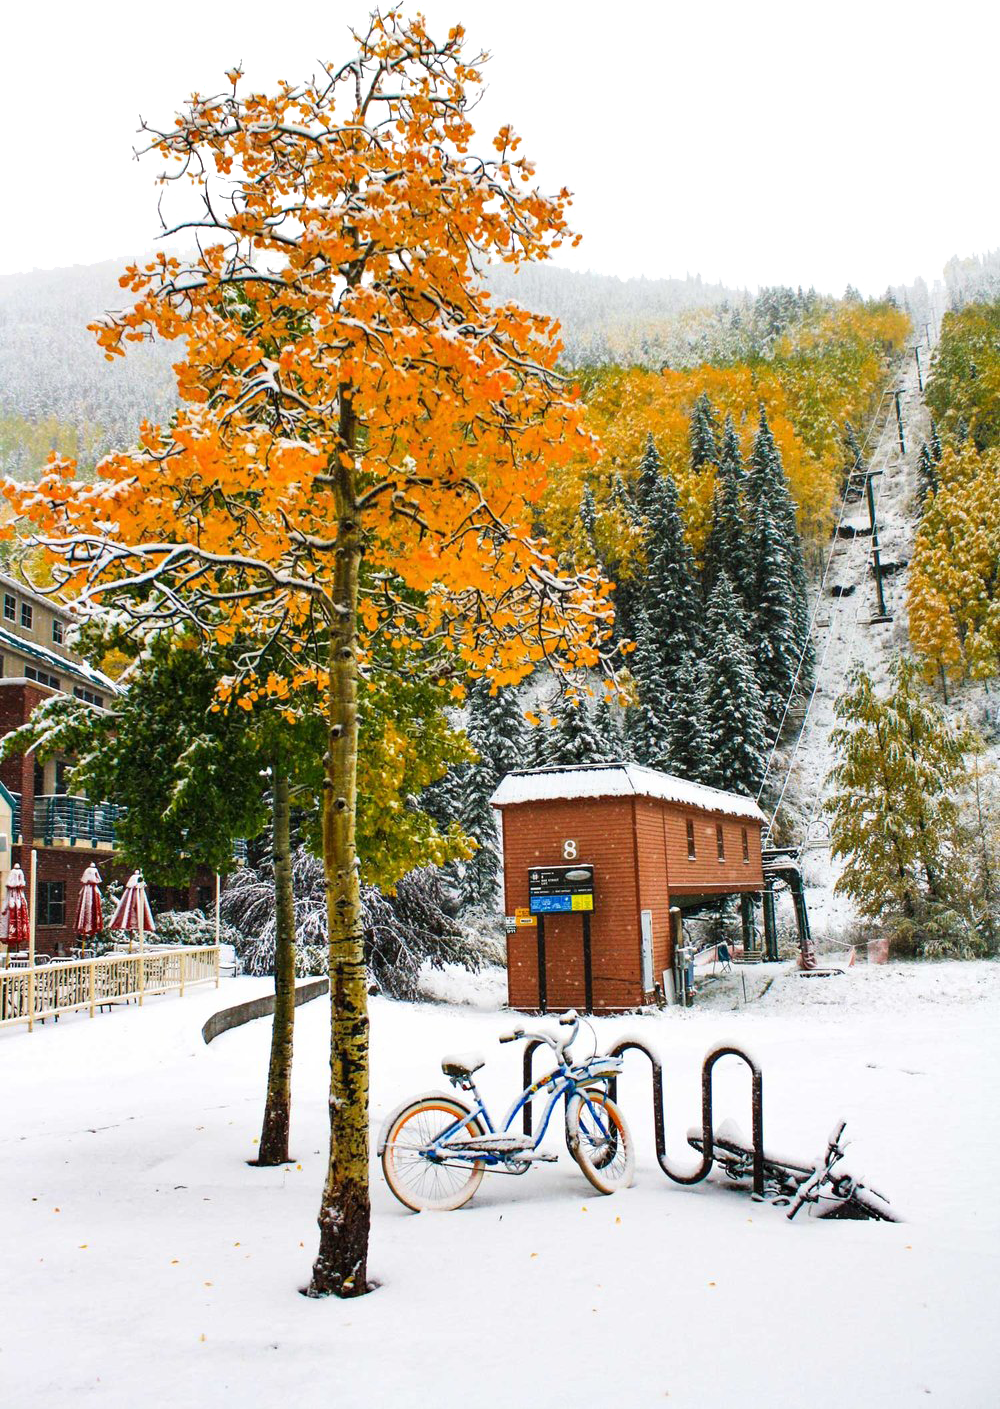 We like to tell stories. Here's ours… - Chair 8 Media started back in the San Juan Mountains of Telluride, Colorado. Yep, there she is in all her glory.